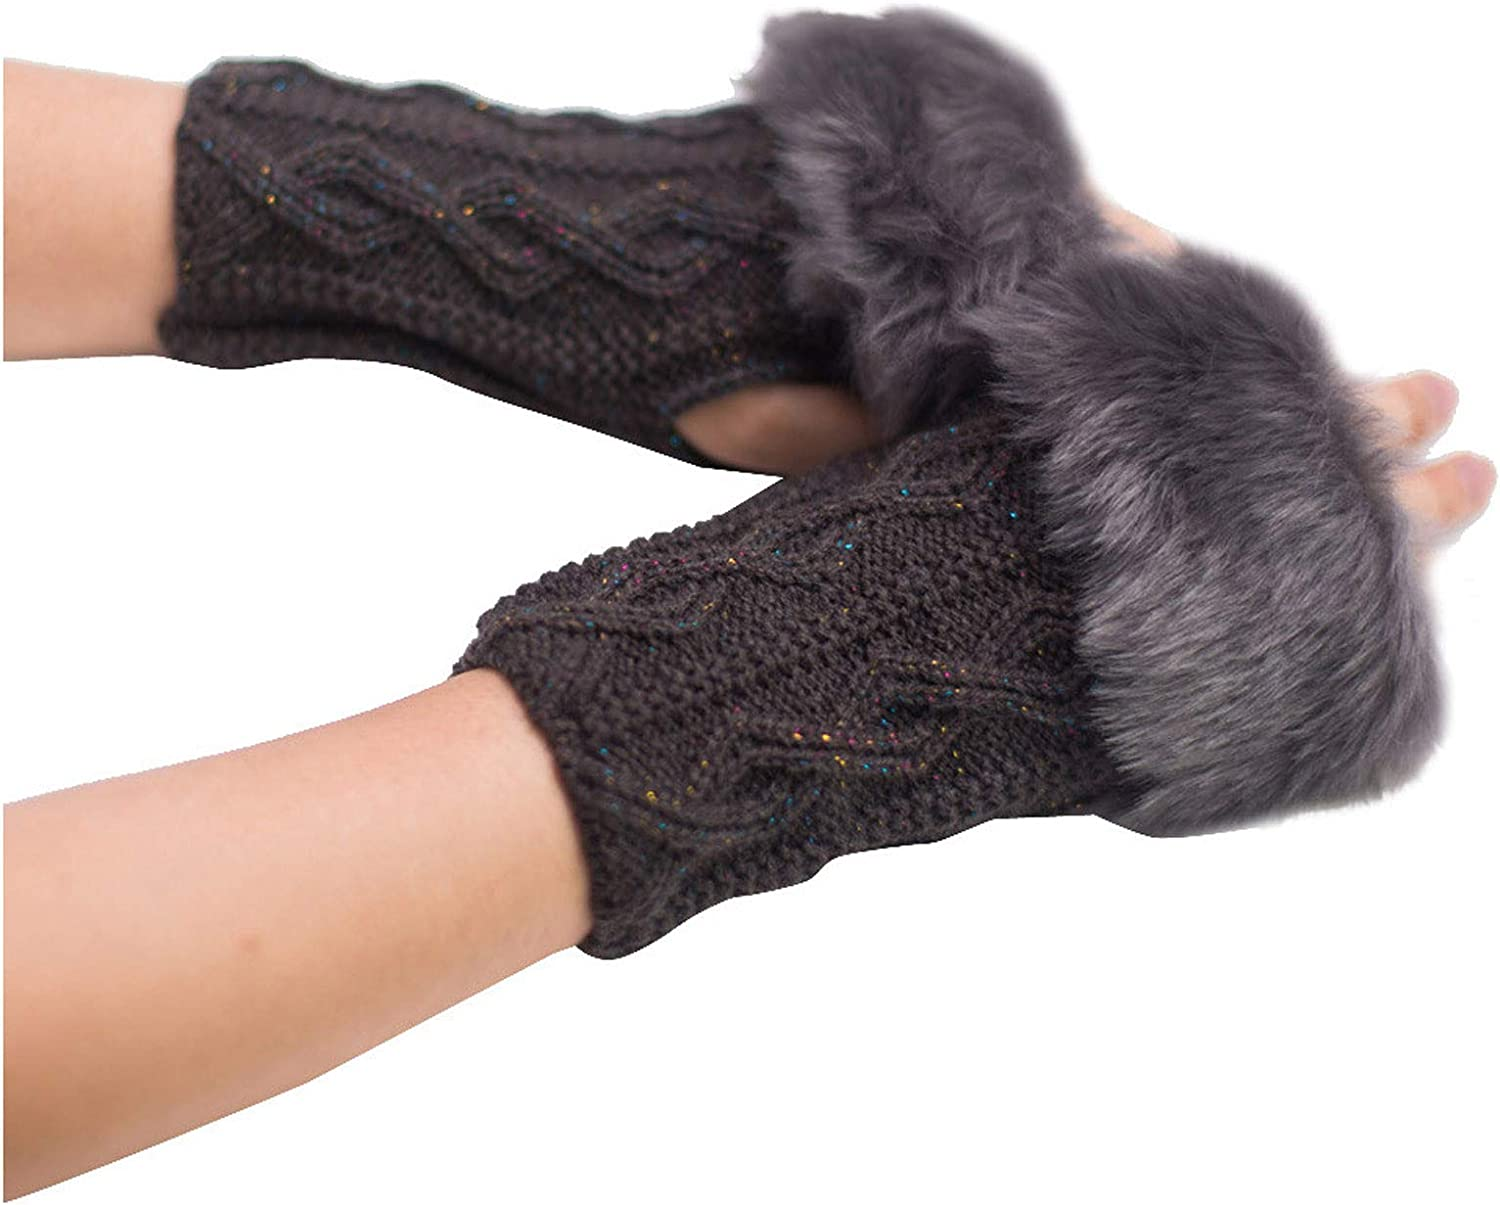 Gloves Faux Rabbit Fur Wrist Fingerless Gloves Mittens Black Red for Girls Women Winter Warm Outside Work Outdoor Sports Snowball Fight Ski Shovel Snow Driving Hiking Motorcycle Cycling